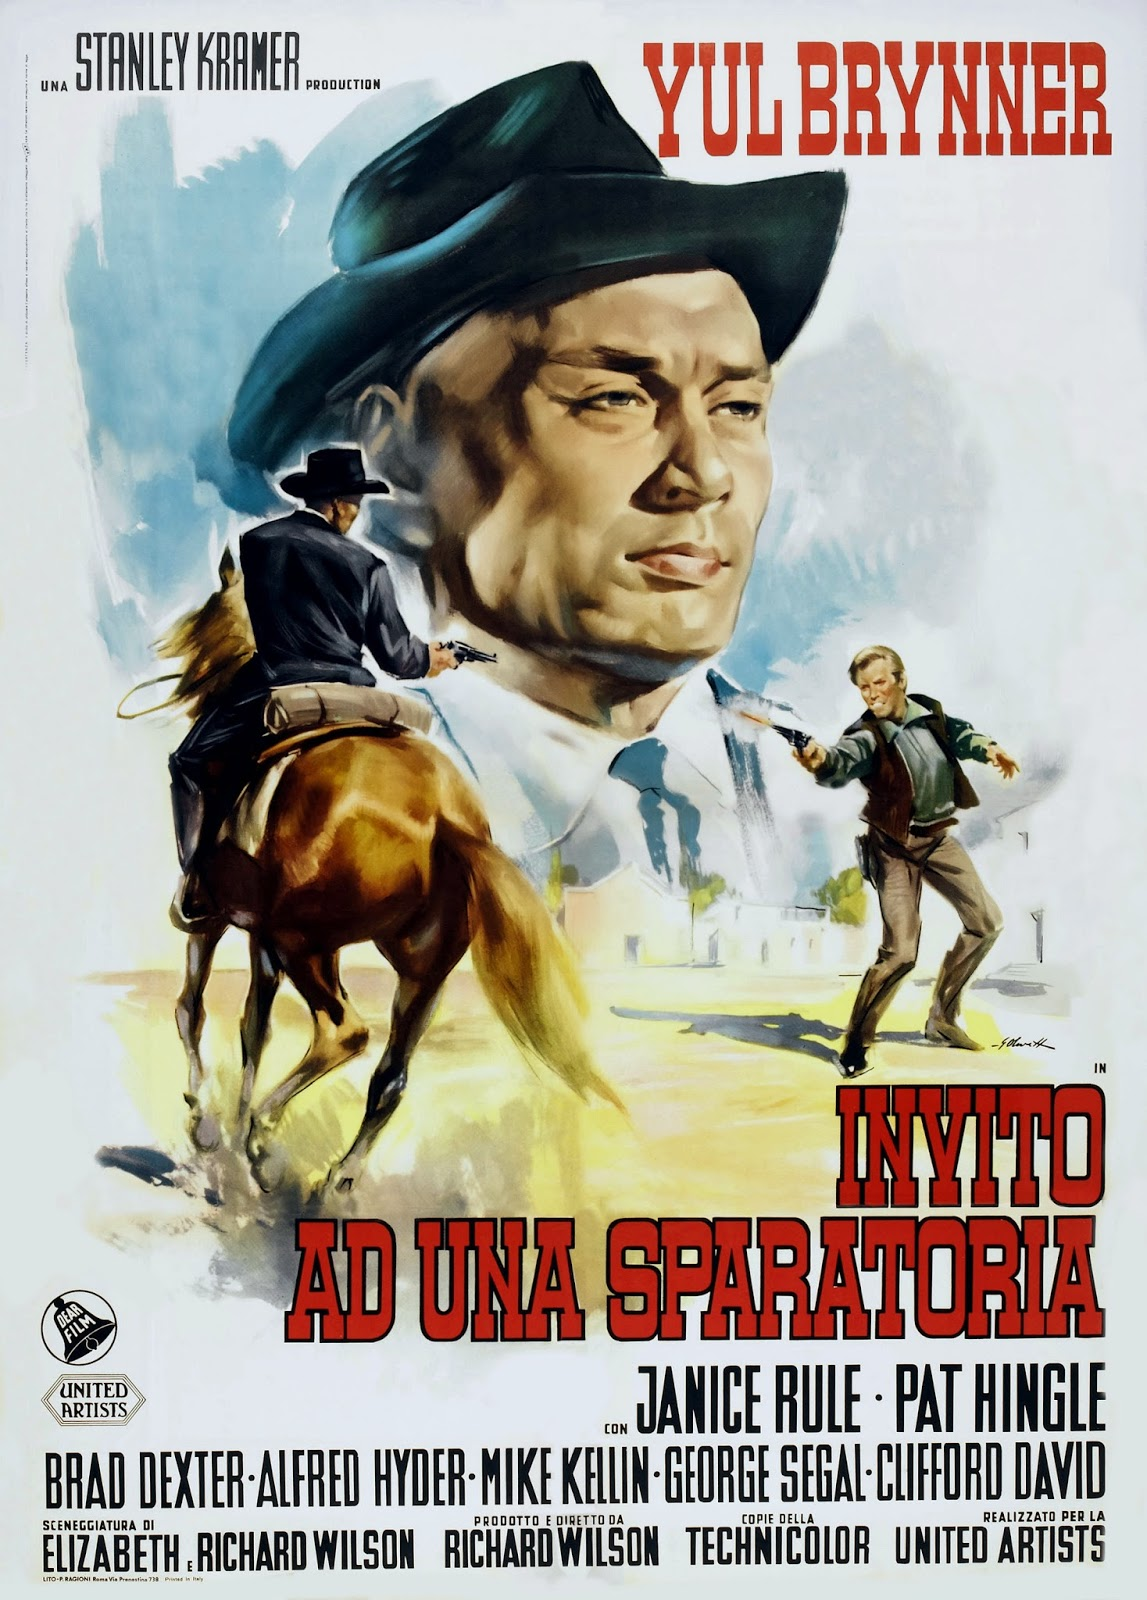 Invitaci_n_a_un_pistolero___Invitation_to_a_Gunfighter___tt0058238____1964__Italian_1_.jpg